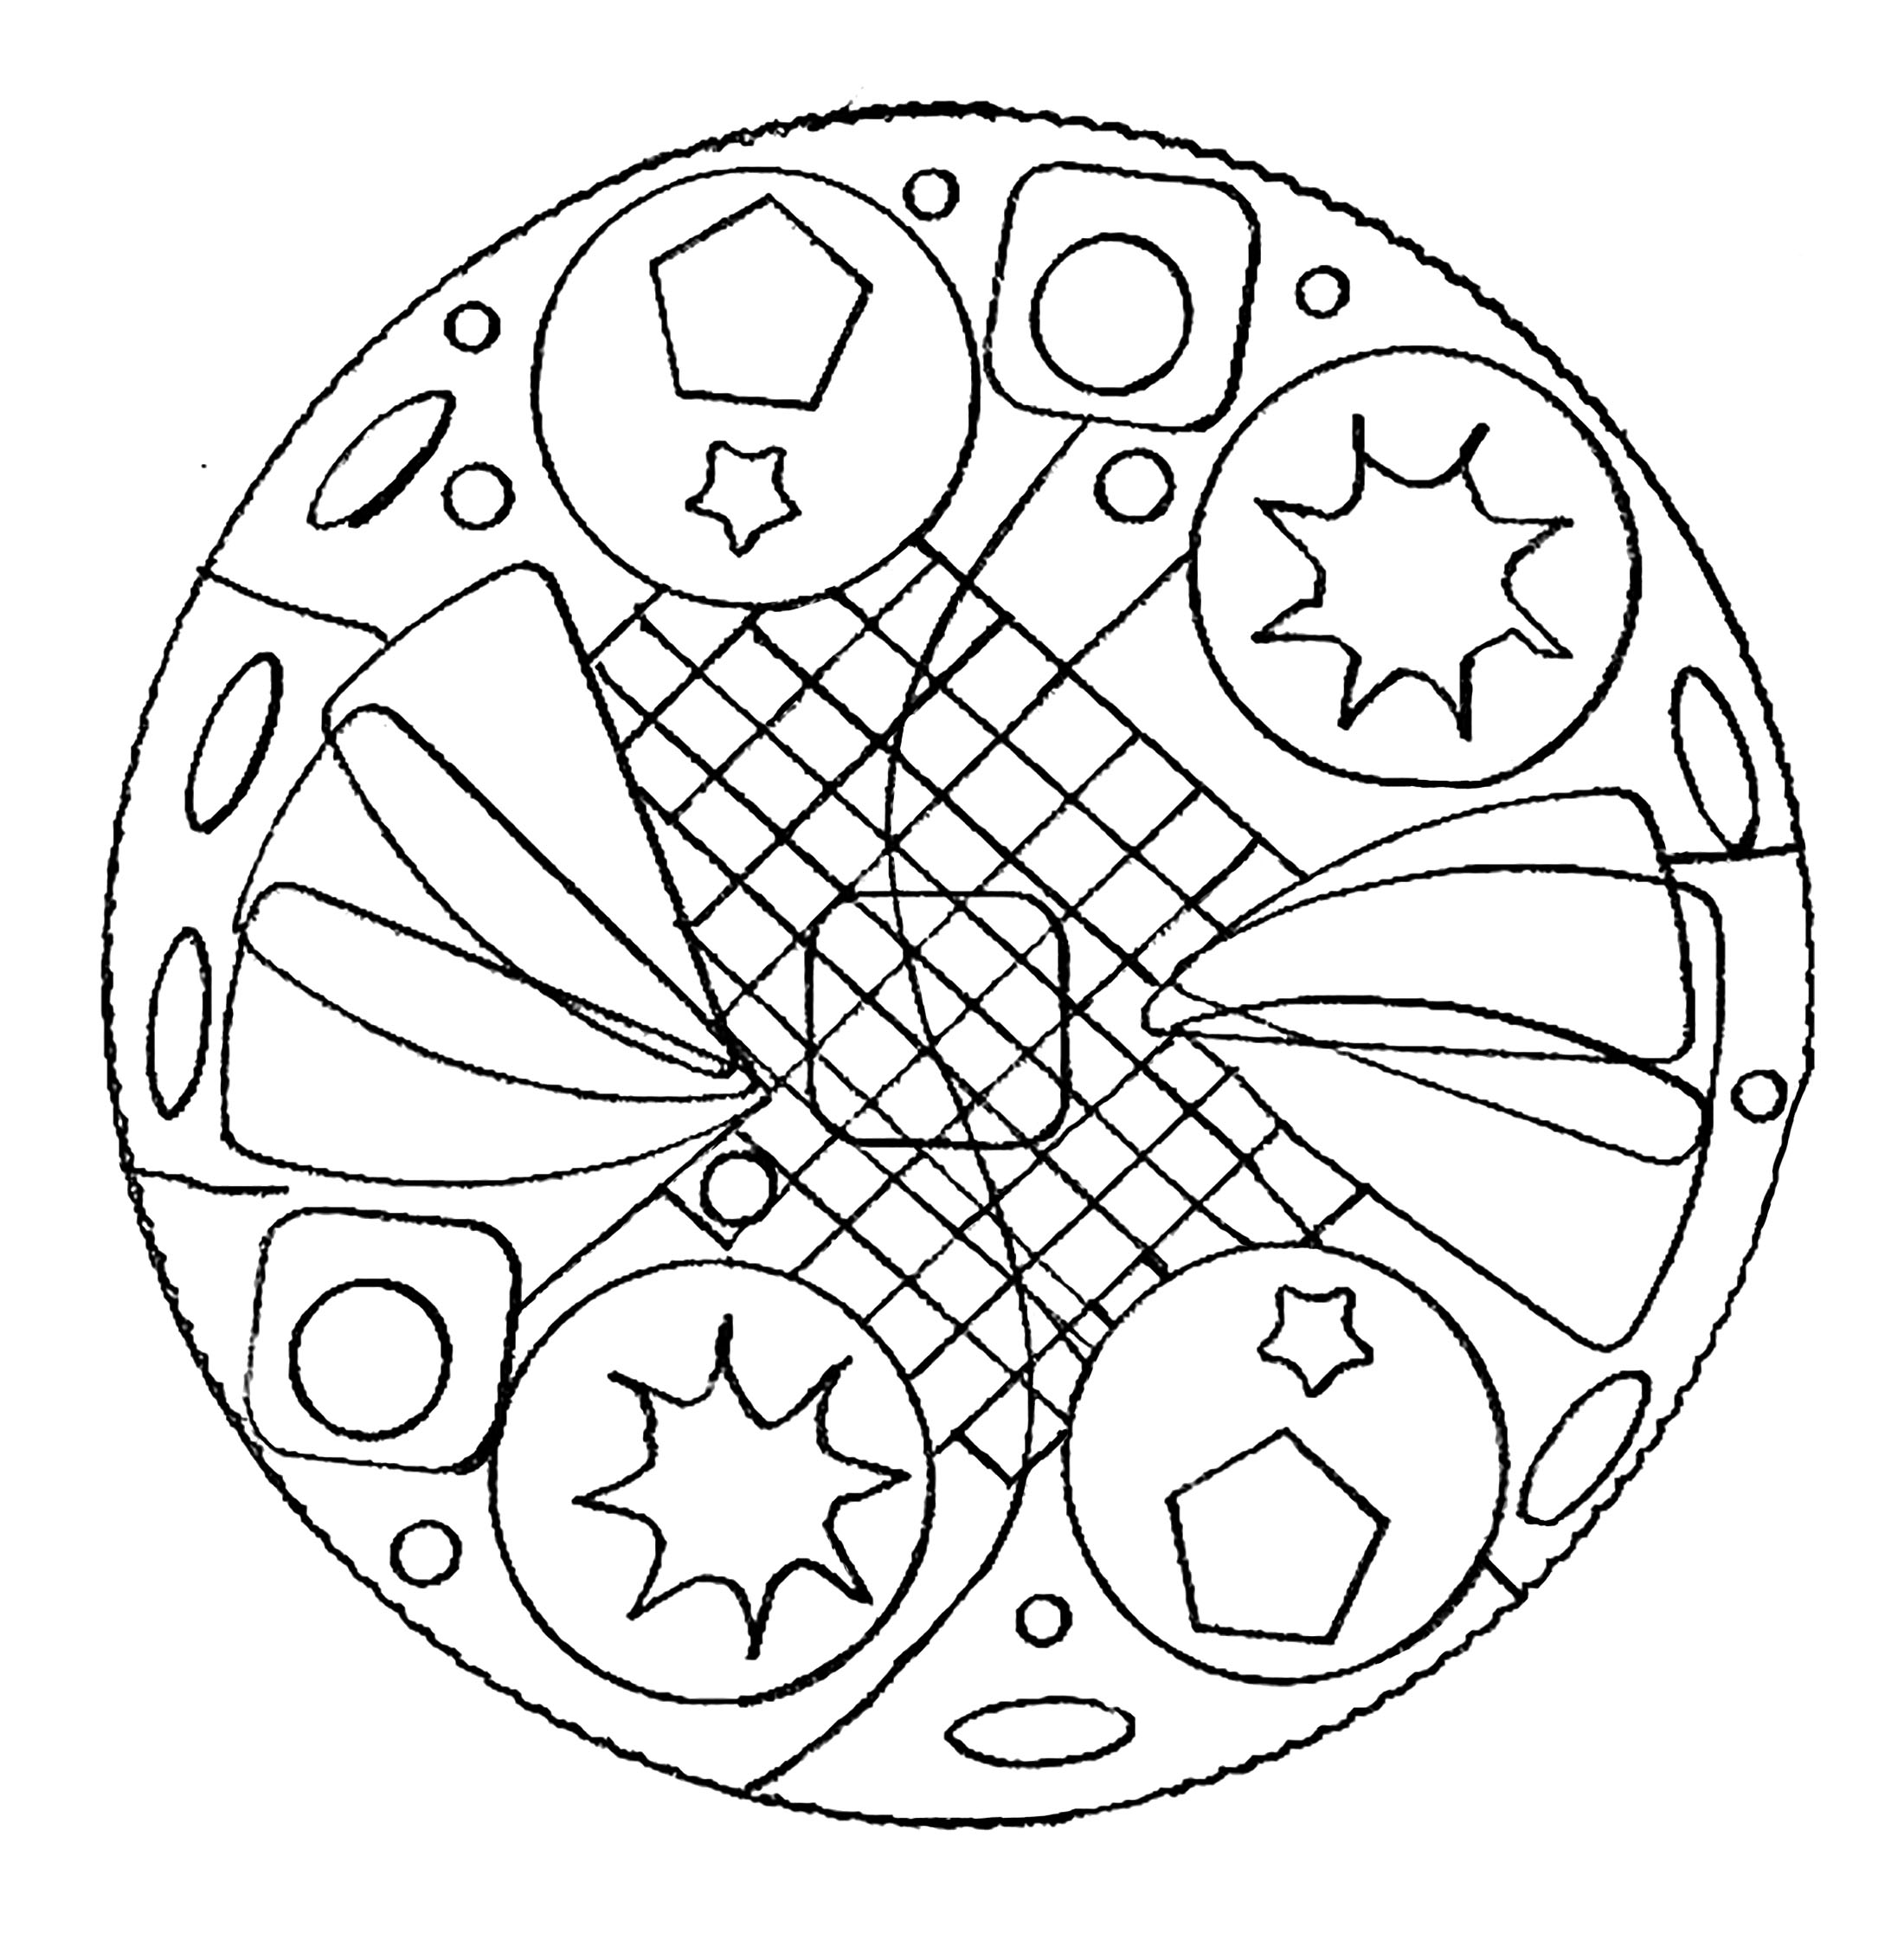 simple mandalas domandalas coloring pages for adults justcolor